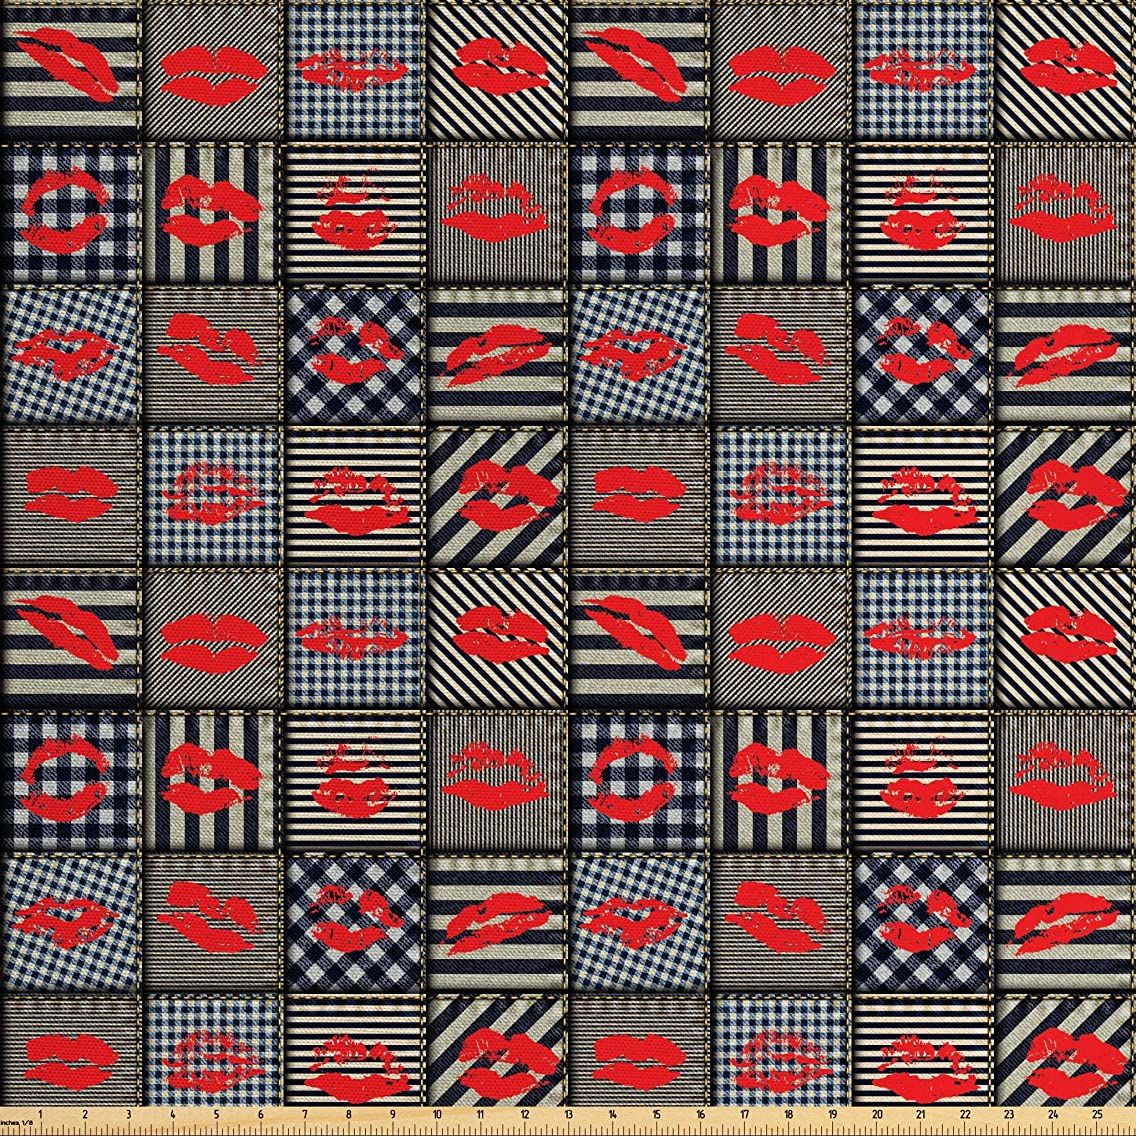 Ambesonne Fabric Fabric by The Yard, Sexy Woman Figure Kiss Lipstick Forms on Striped Houndstooth Groovy Backdrop, Decorative Fabric for Upholstery and Home Accents, 2 Yards, Black and Red